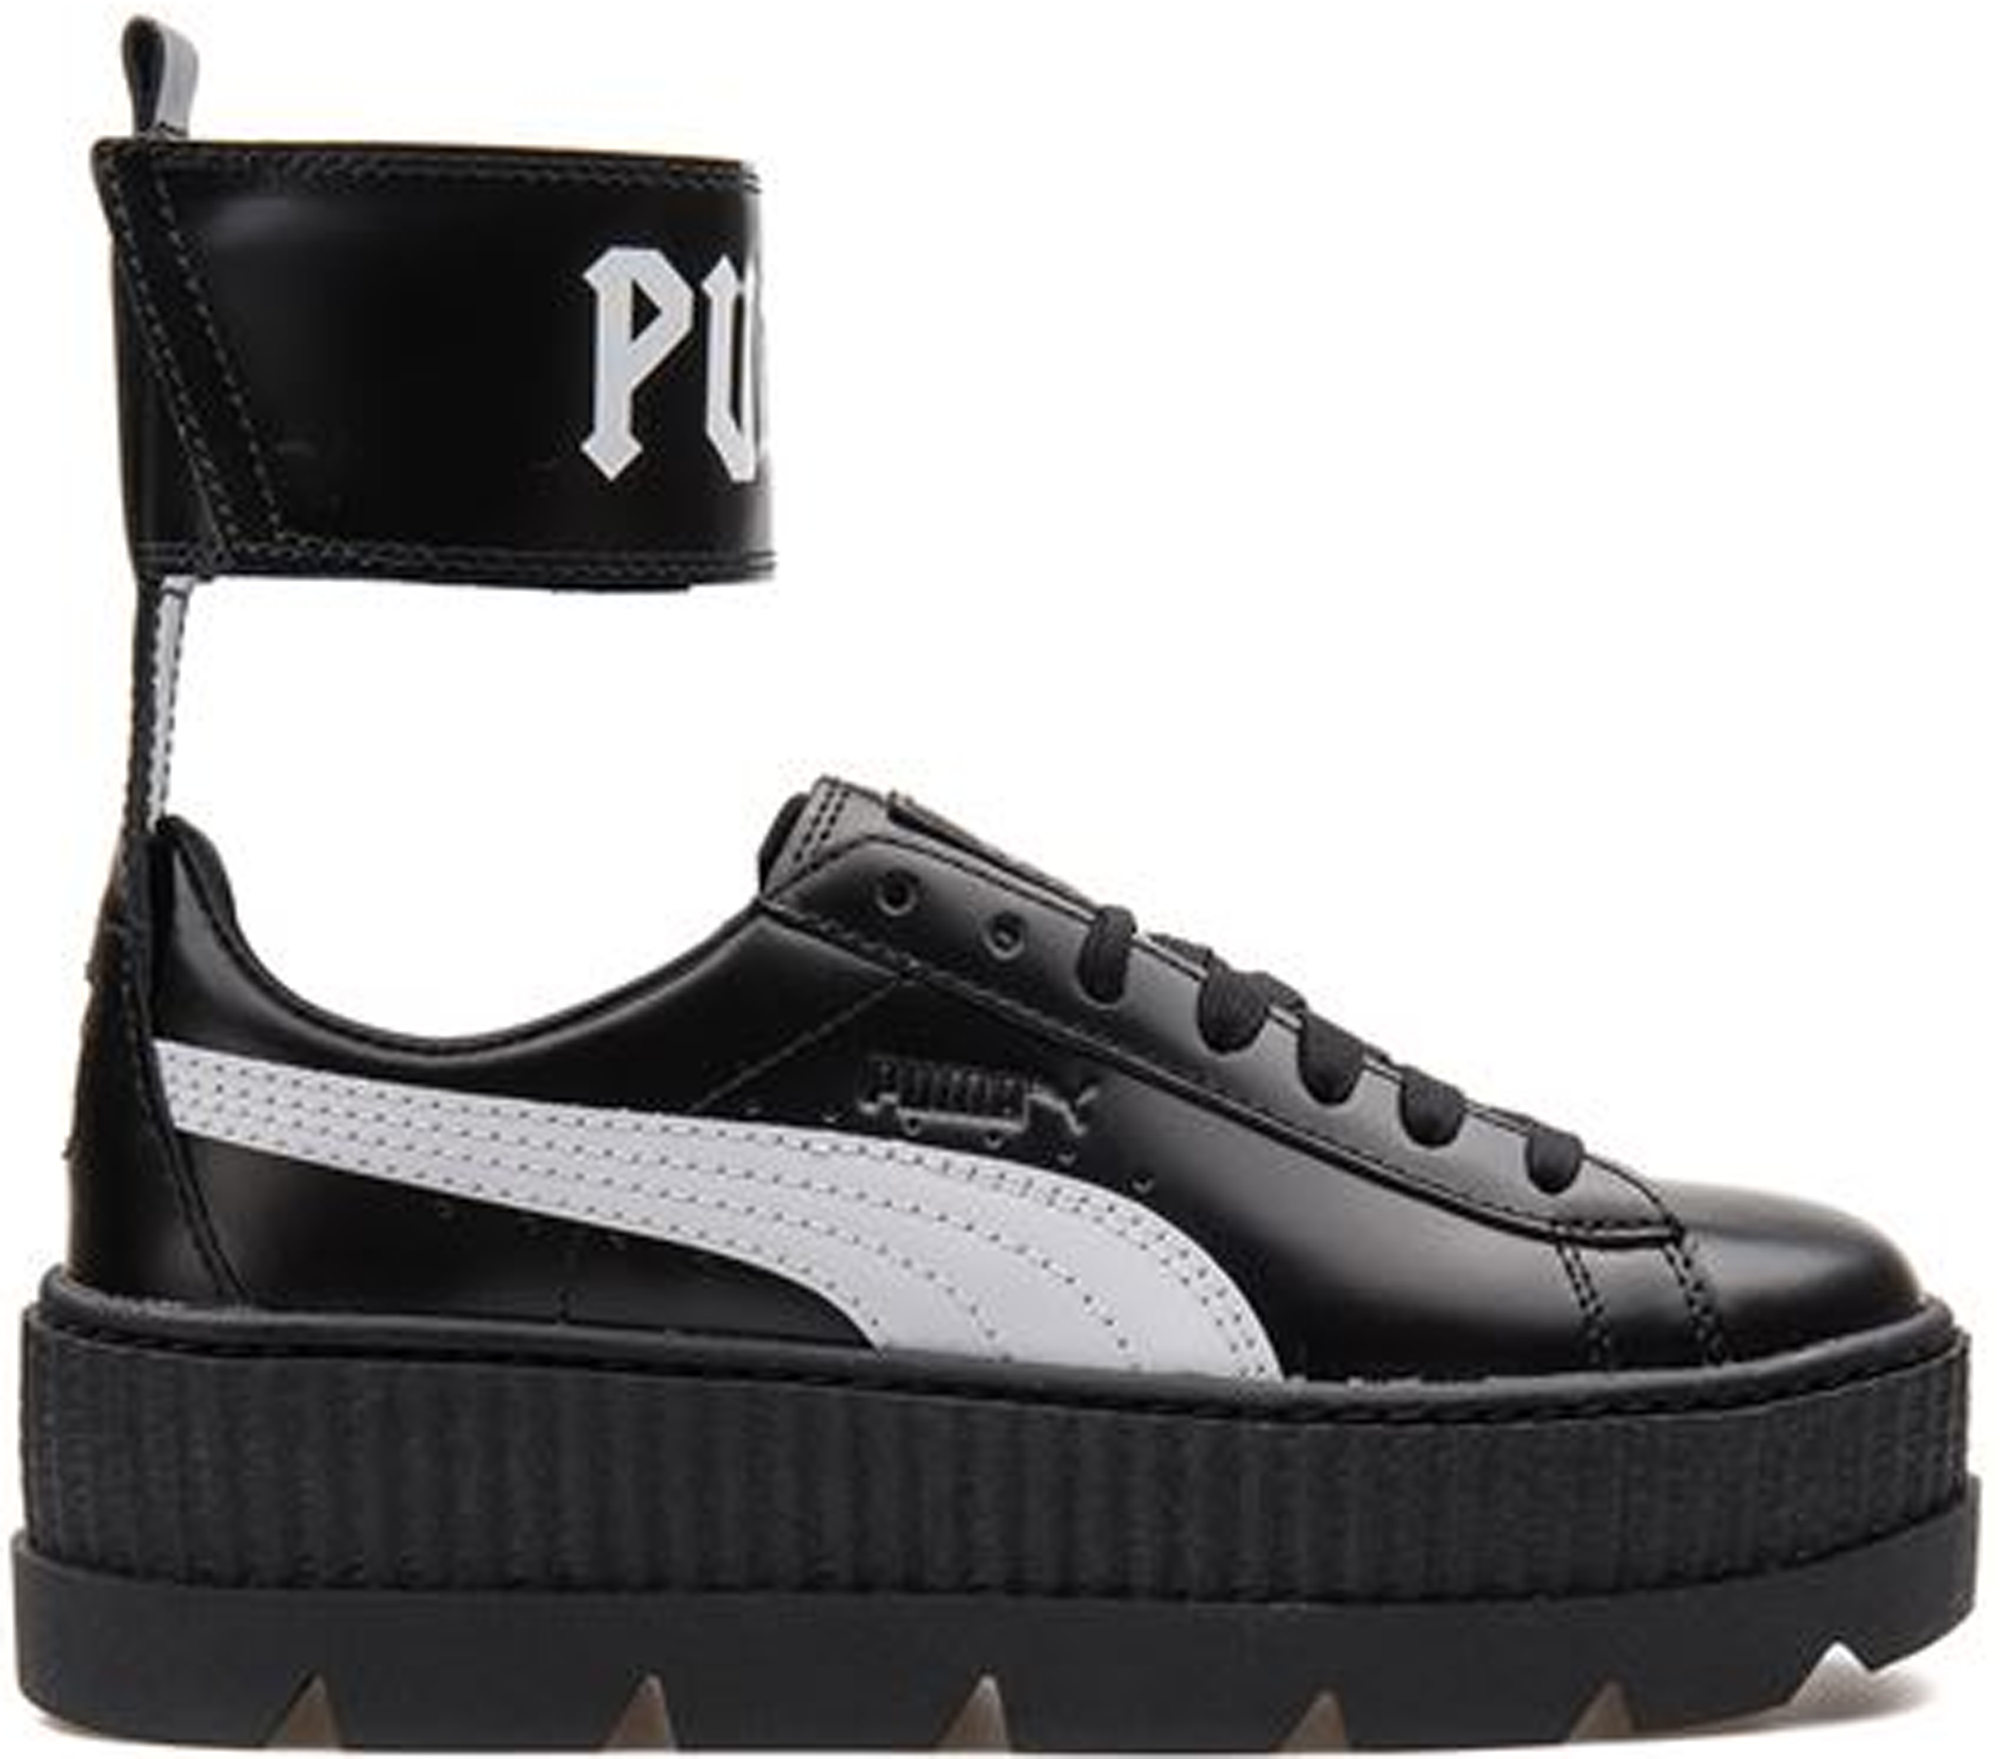 puma shoes with ankle strap